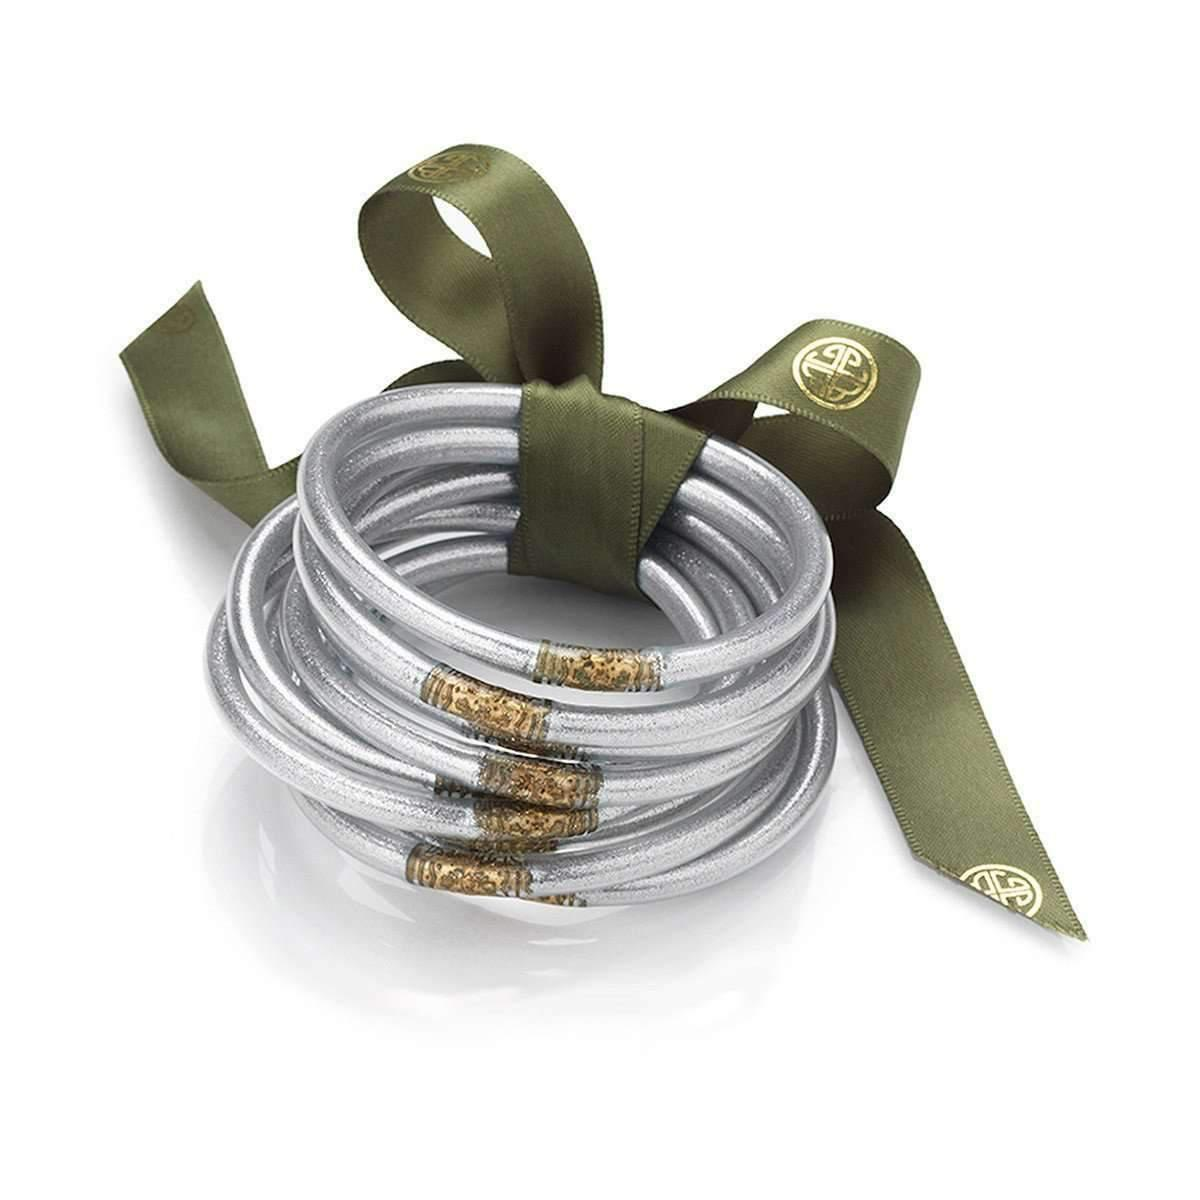 BuDhaGirl All Weather Serenity Silver Bangles - Large - 23cm DIdPJ